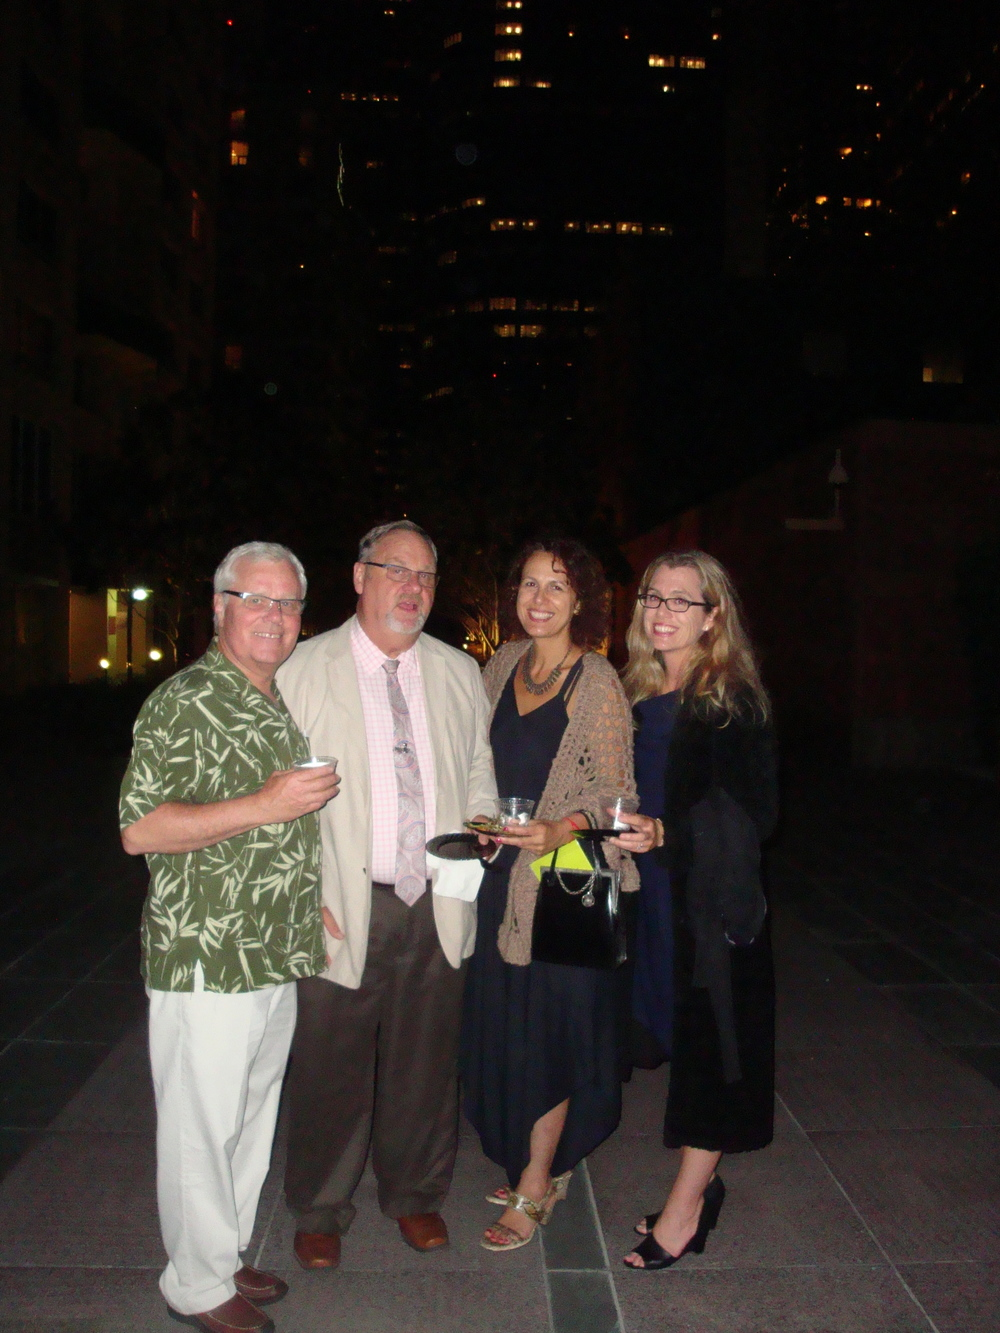 Second from left, Harold Sutherland Los Angeles Asylum Office, Dalia Setareh Senior Attorney at LAFLA with friends